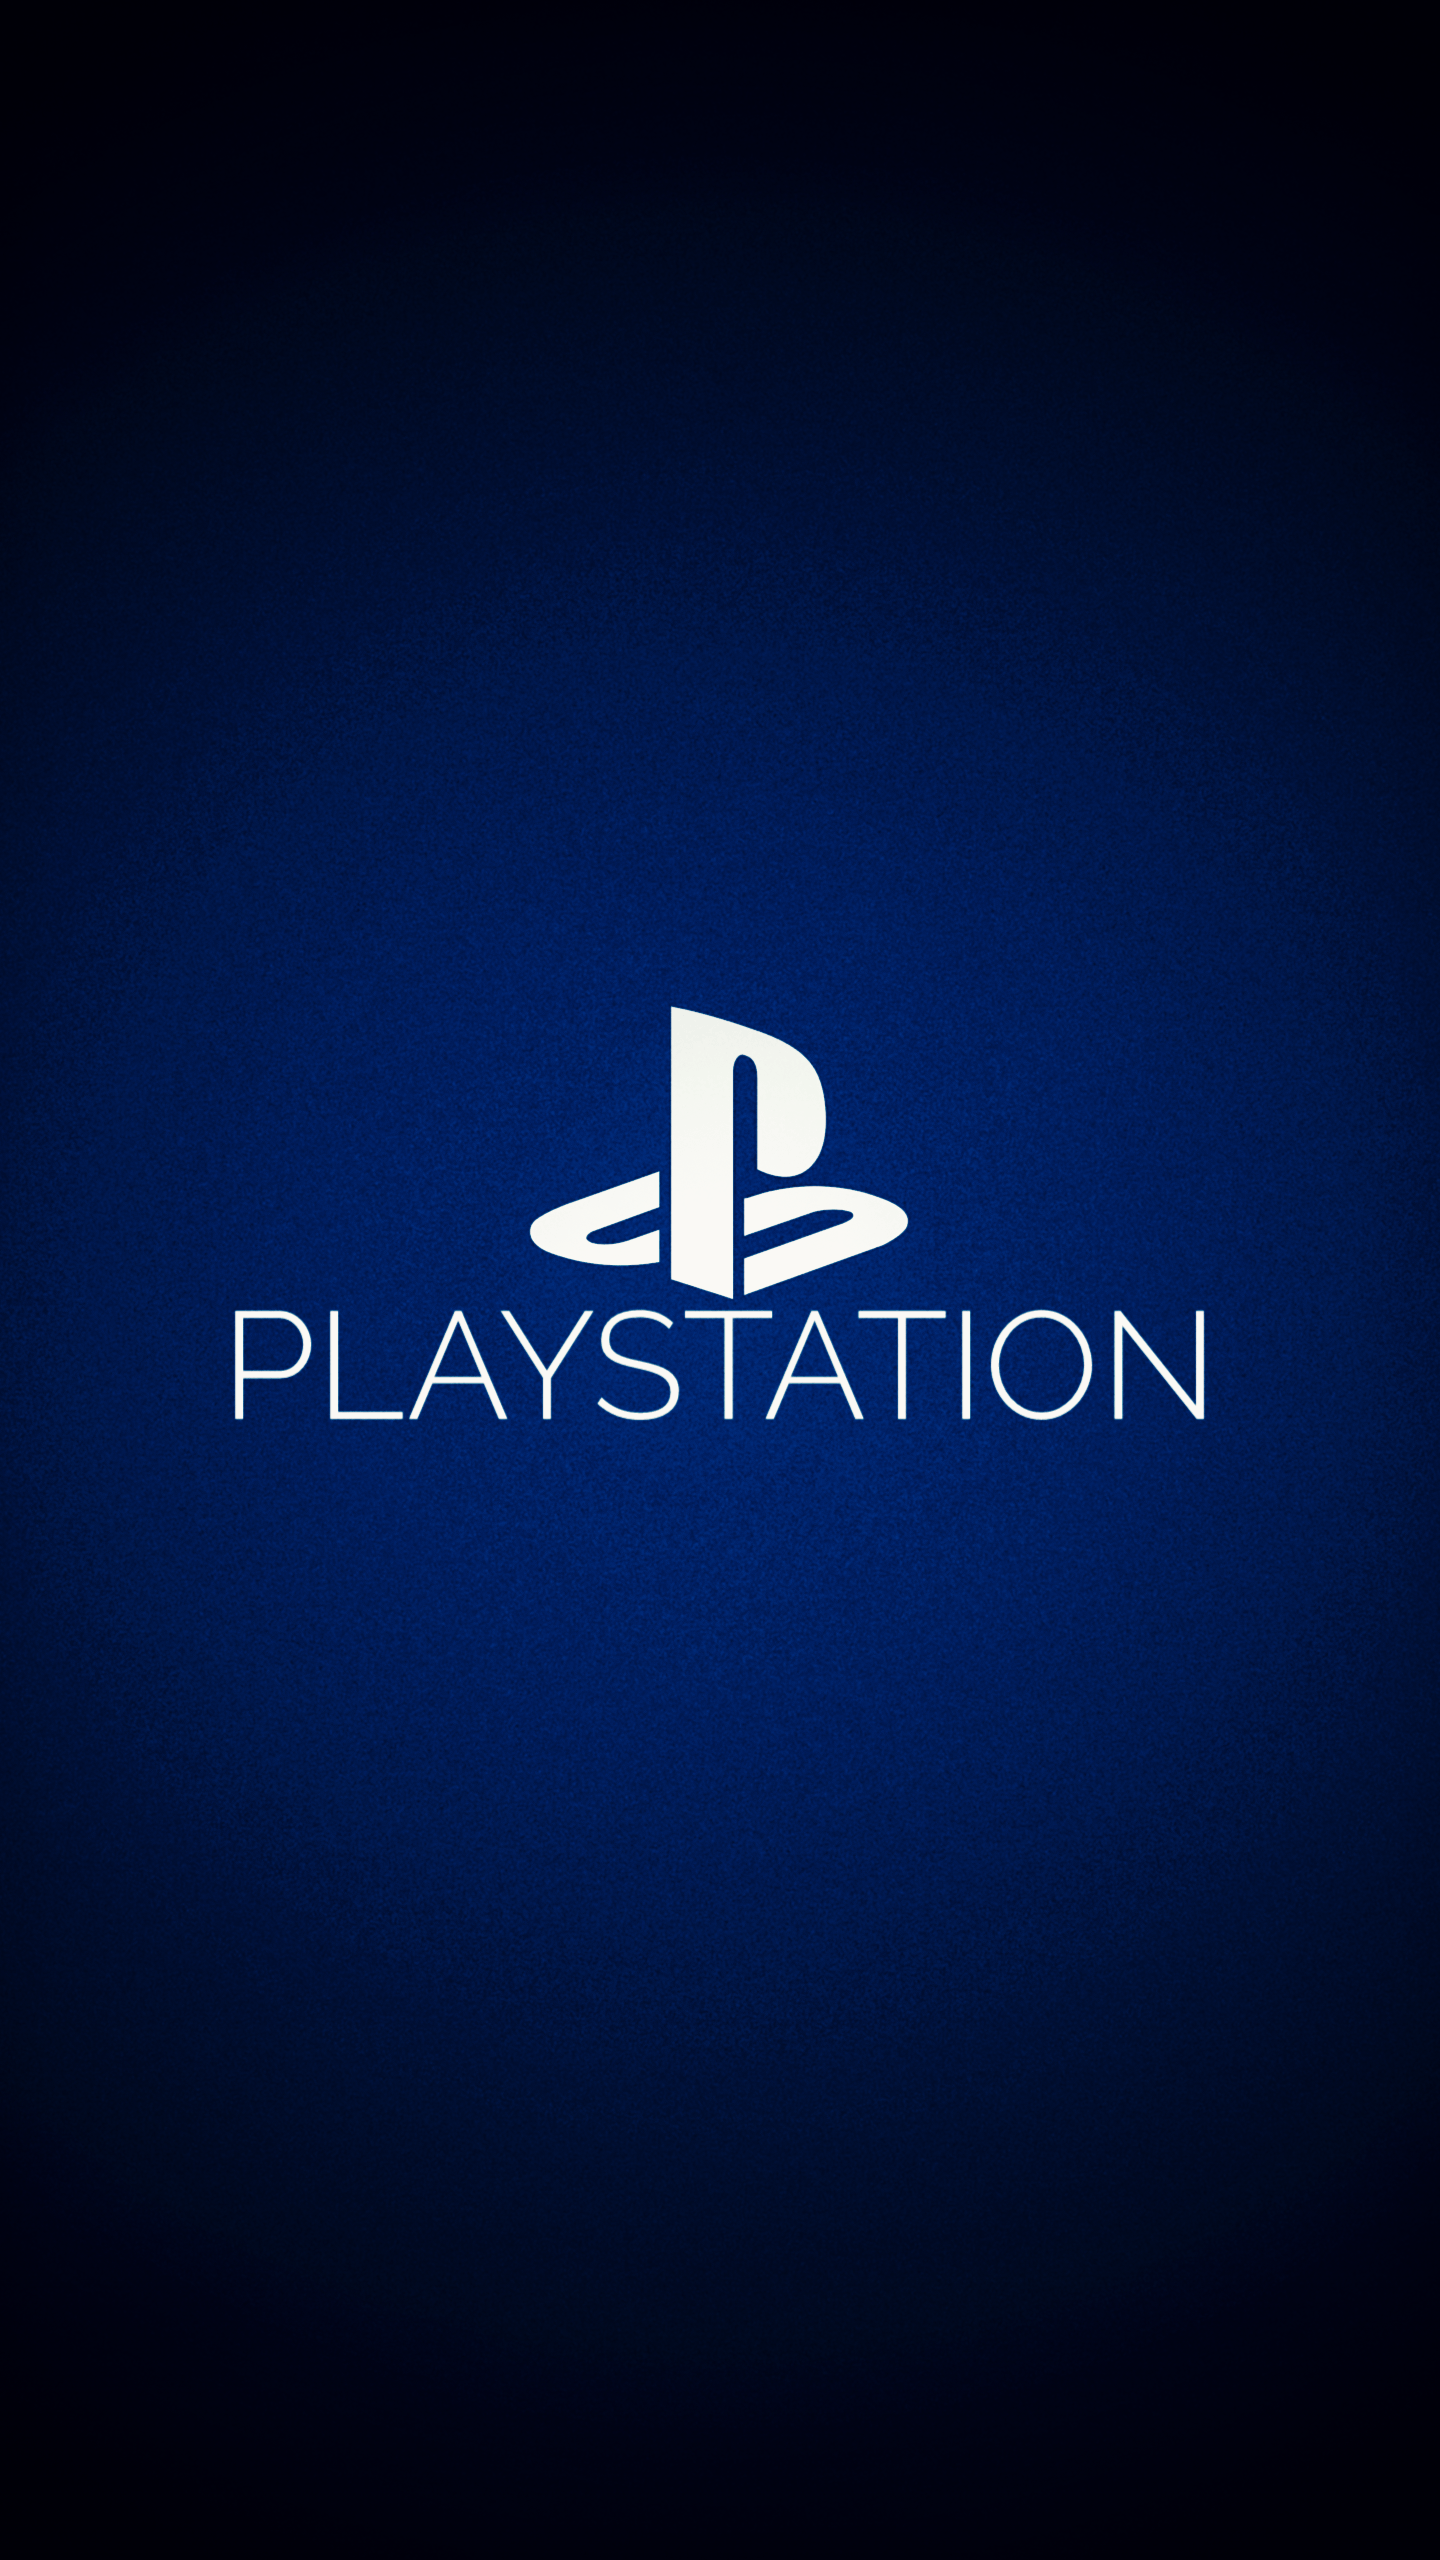 Playstation Contact Playstation Classic Wallpapers Wallpaper Cave